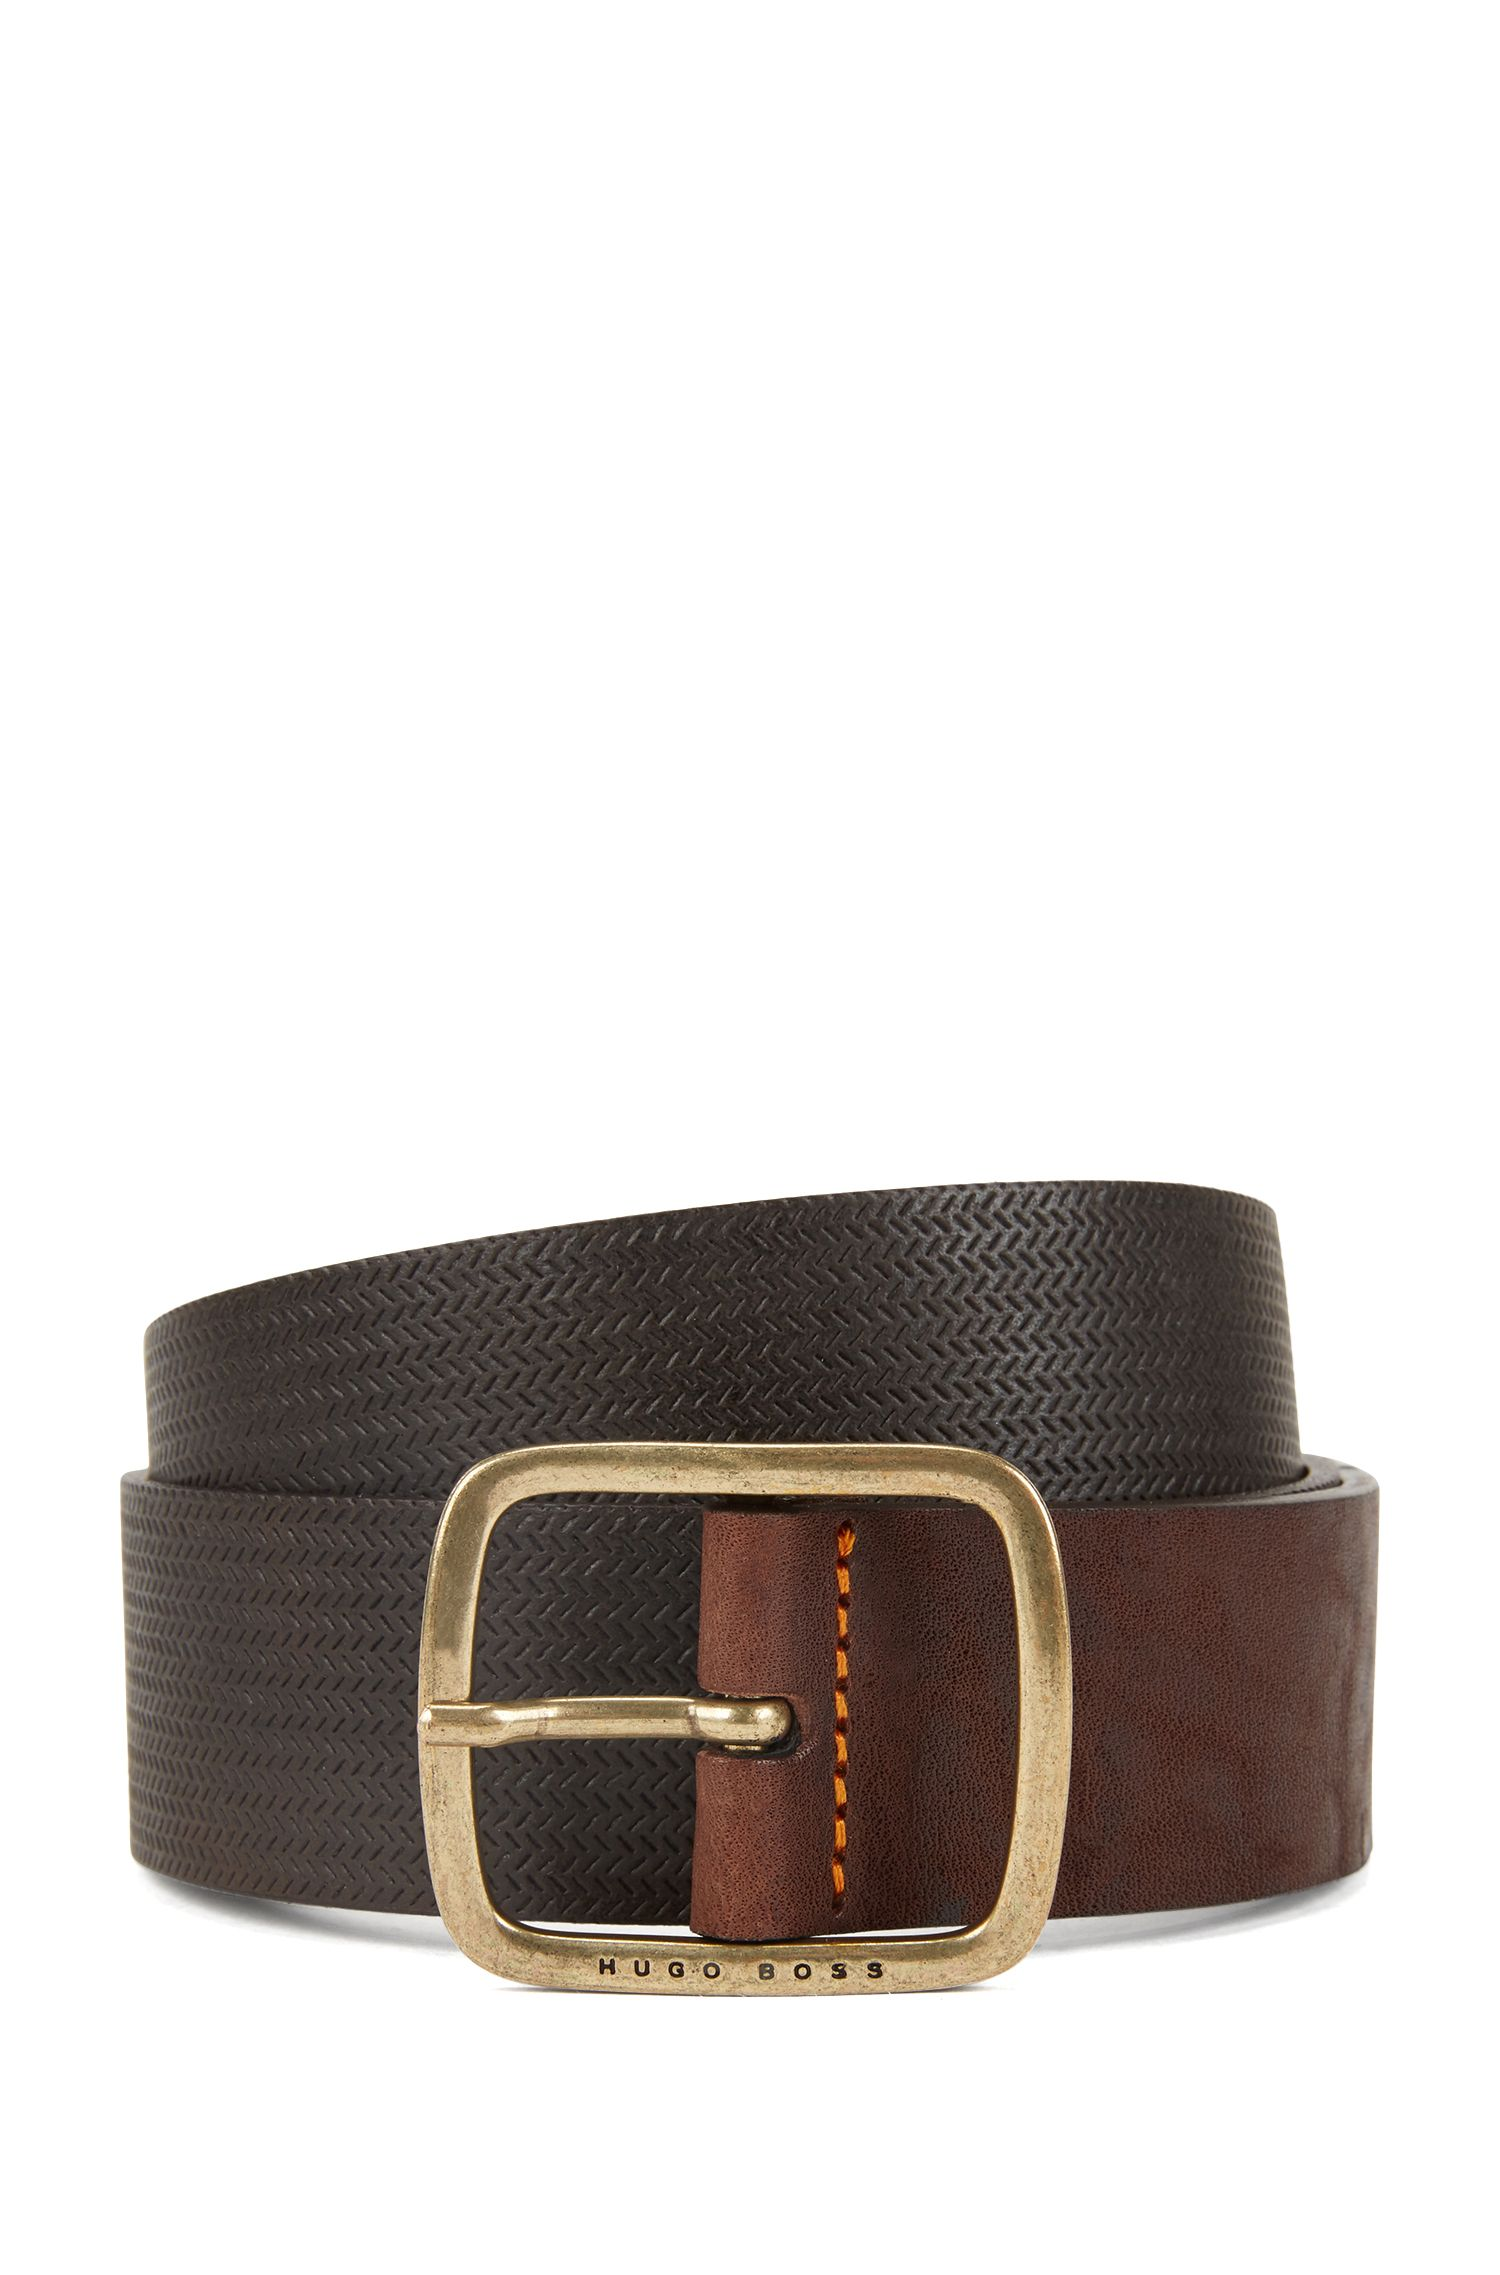 Vintage-look leather belt with antique-effect hardware